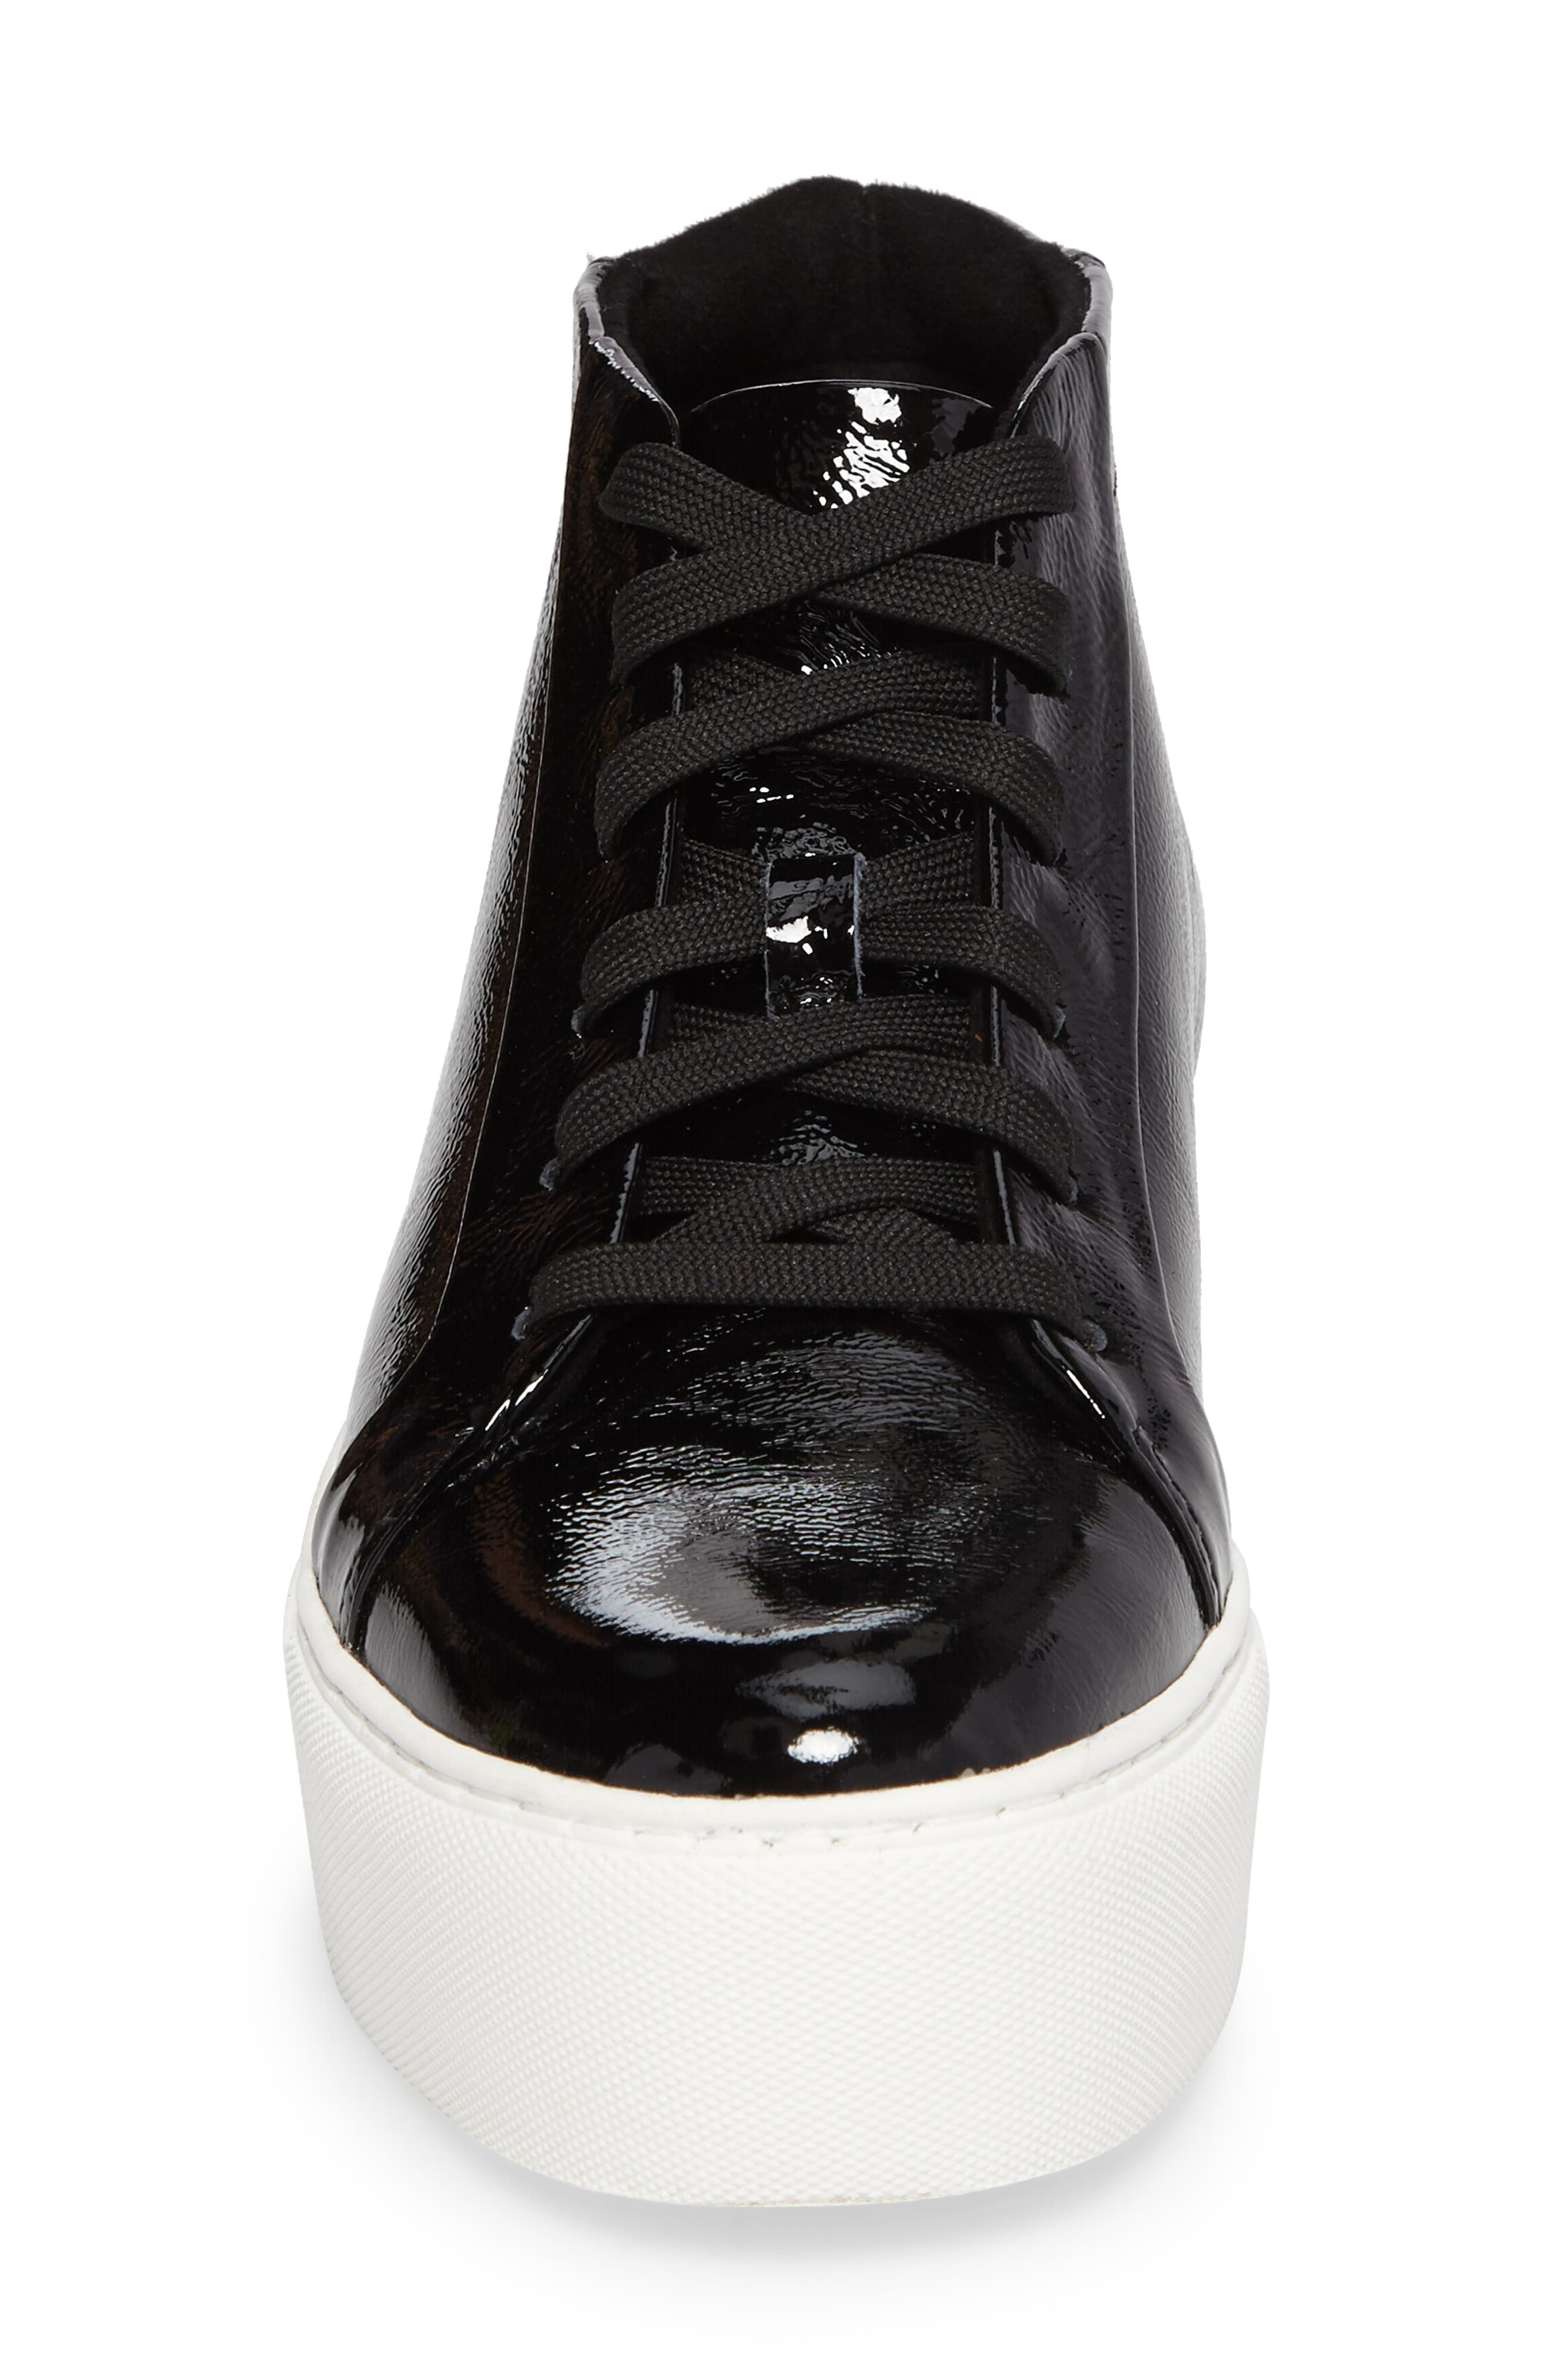 Janette High Top Platform Sneaker,                             Alternate thumbnail 4, color,                             Black Patent Leather